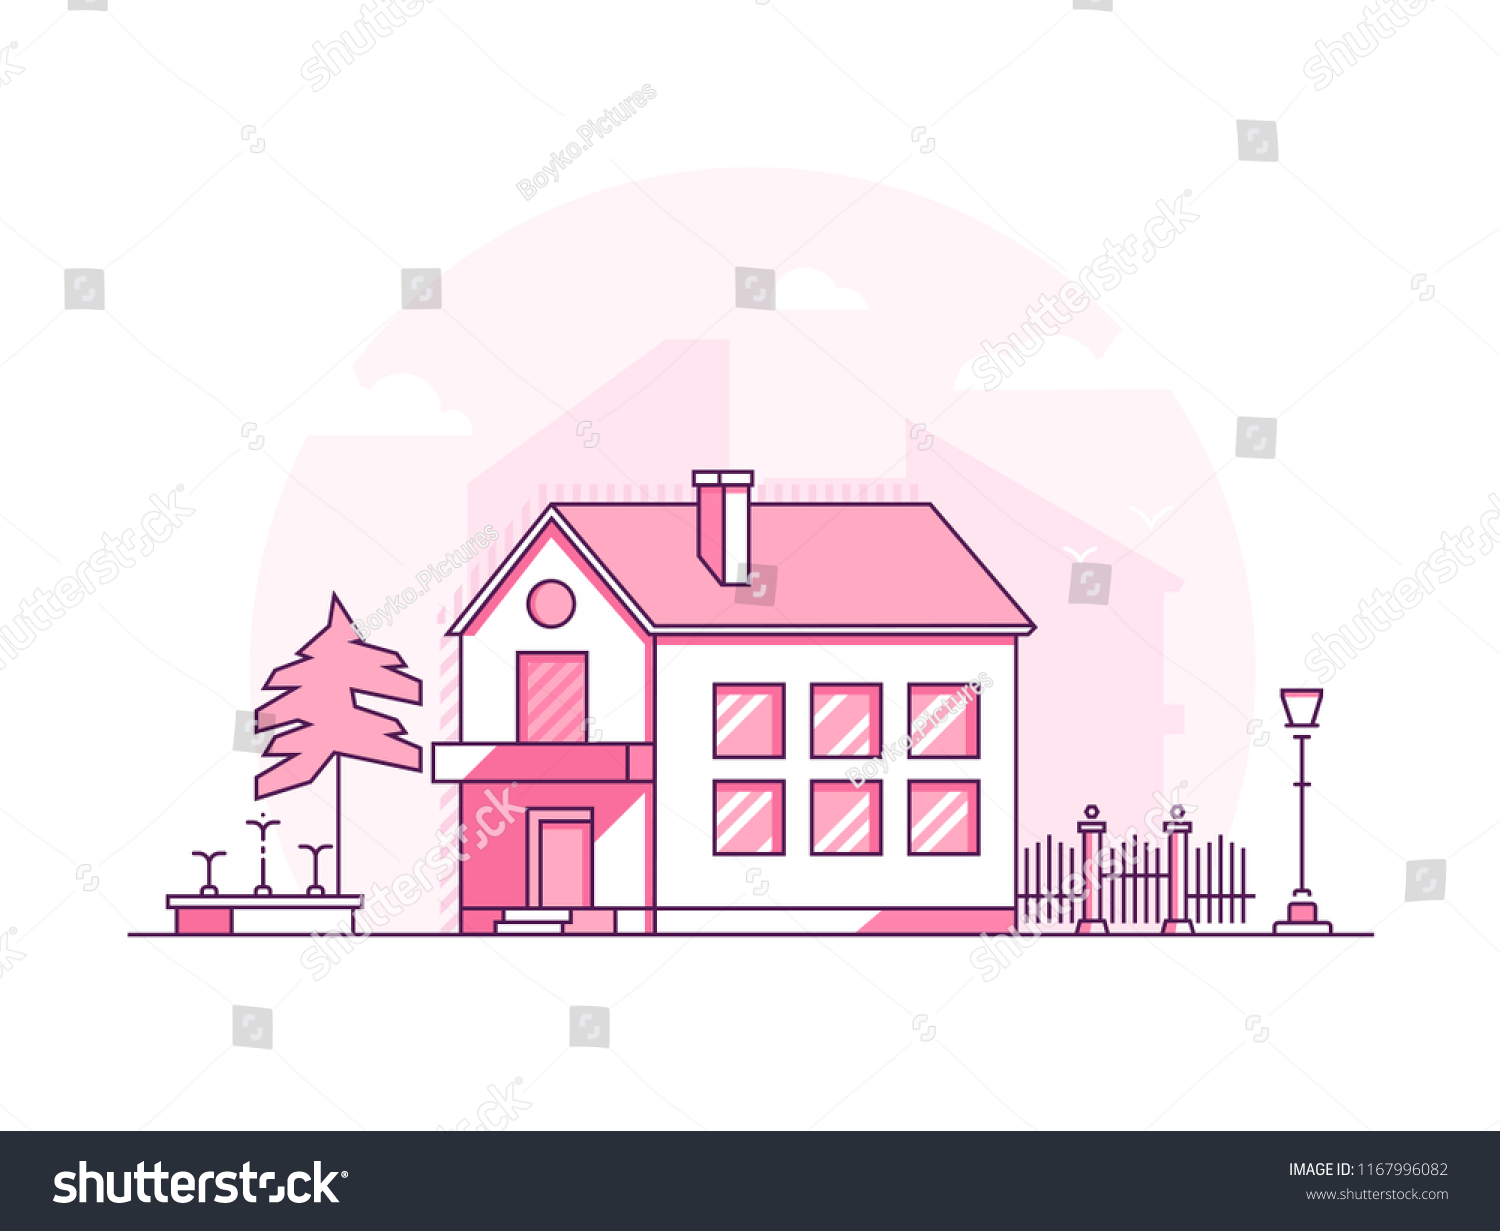 Two Storey Building Modern Thin Line Stock Vector (Royalty Free ...